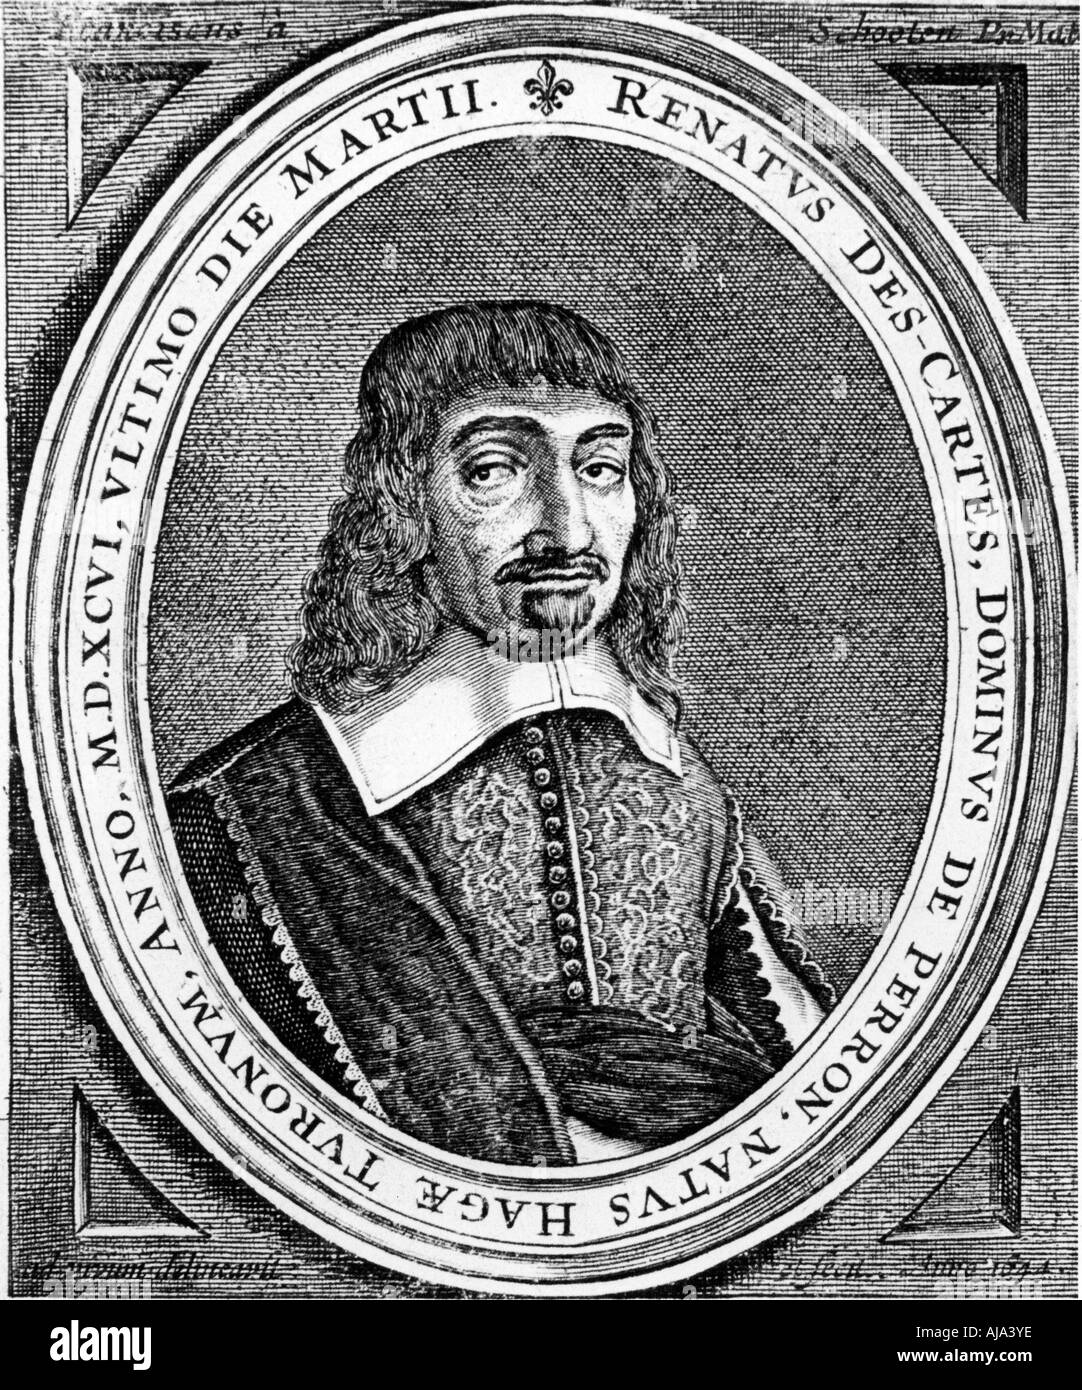 french mathematician rene descartes